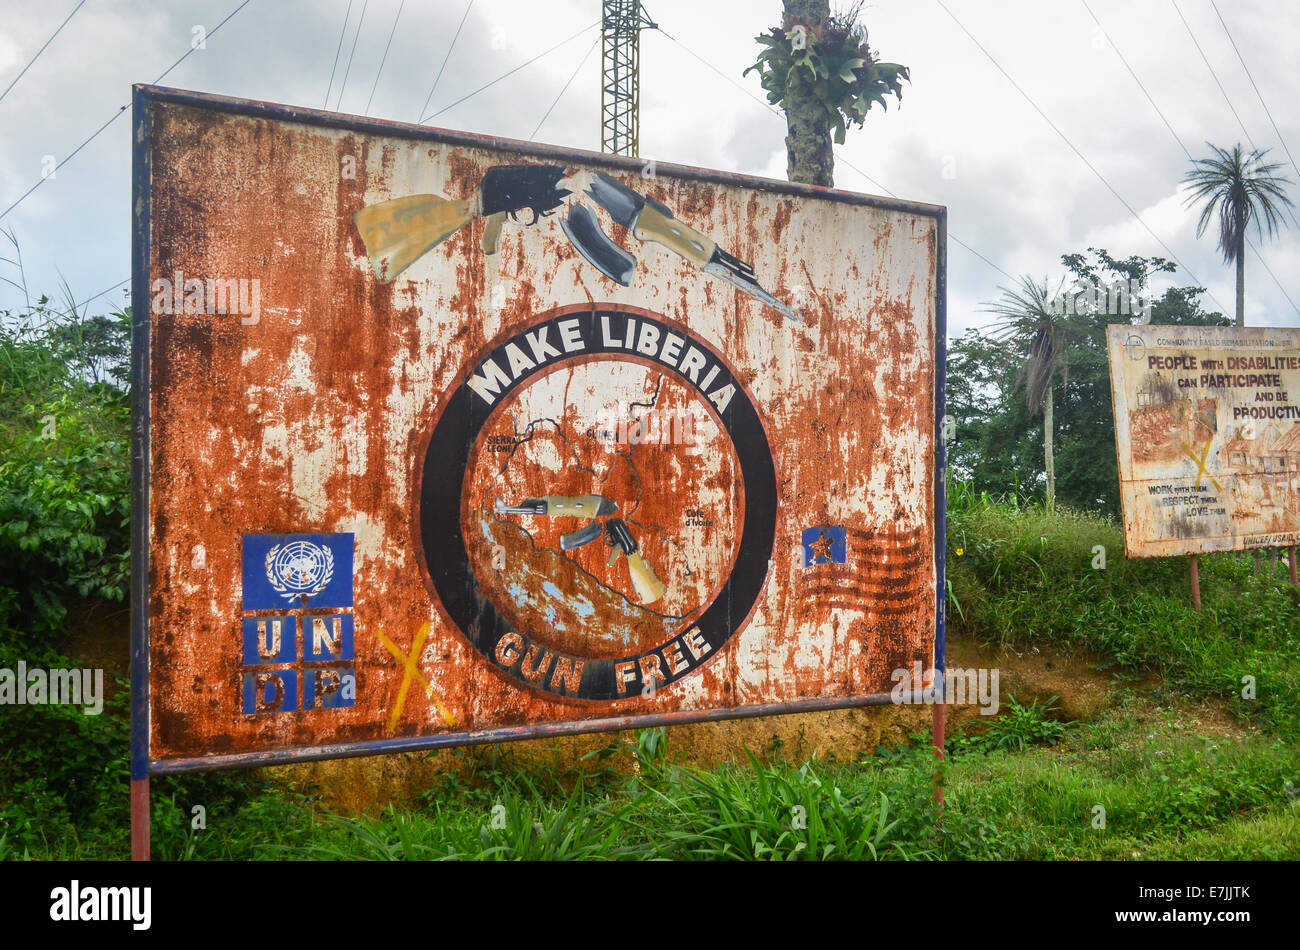 A rusty sign in Liberia reading 'Make Liberia gun free' by UNDP to deal with the civil war - Stock Image